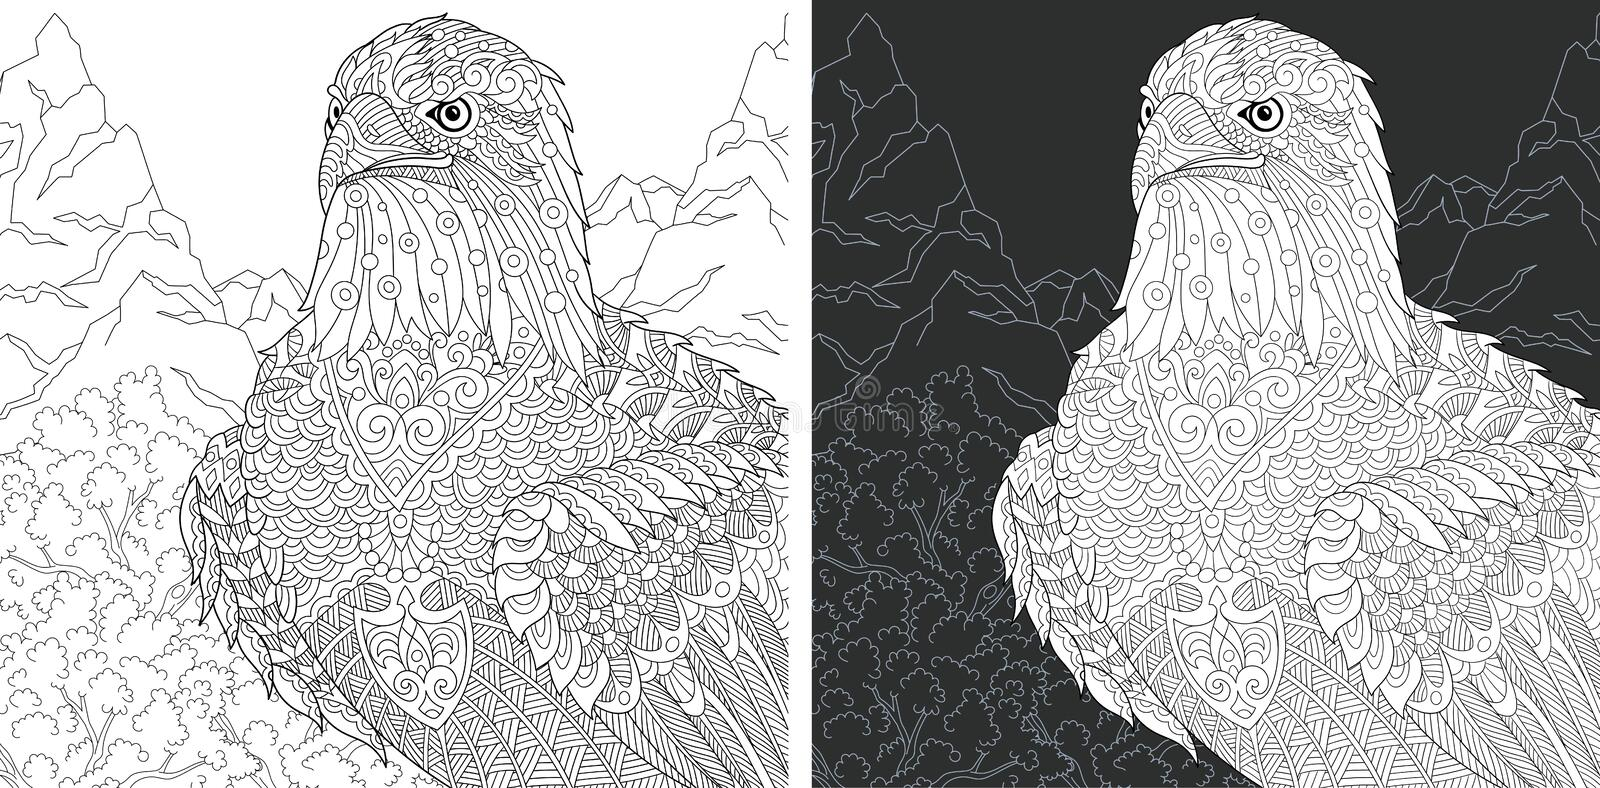 Eagle Coloring Page. Eagle. Coloring Page. Coloring Book. Colouring picture with bald eagle drawn in zentangle style. Antistress freehand sketch drawing. Vector royalty free illustration